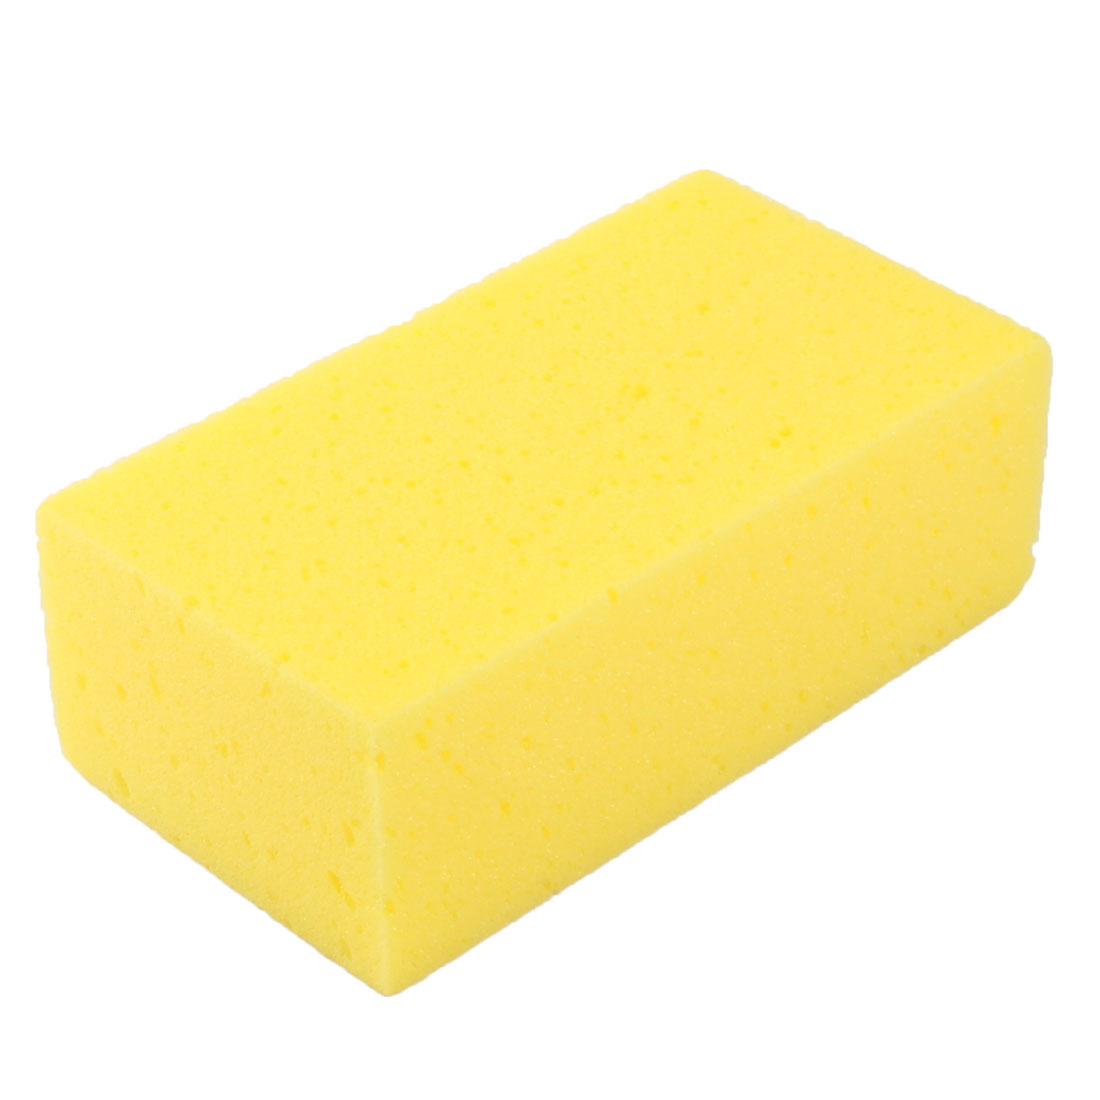 Auto Car Truck Motorcycle Furniture Boat Sponge Cleaner Block Cleaning Tool